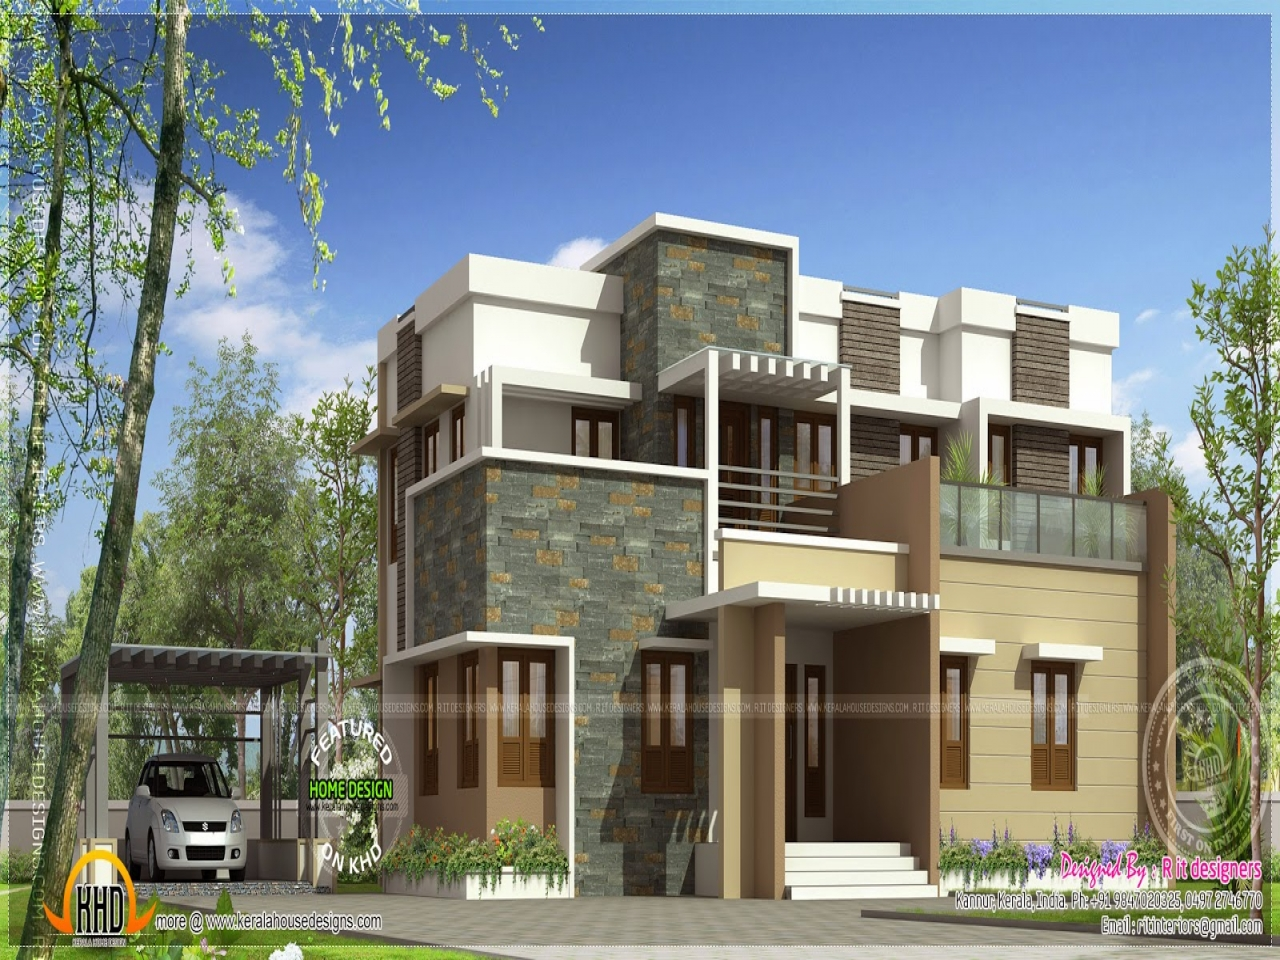 Flat roof modern house plans flat roof two story house, 20 x 38 house plans